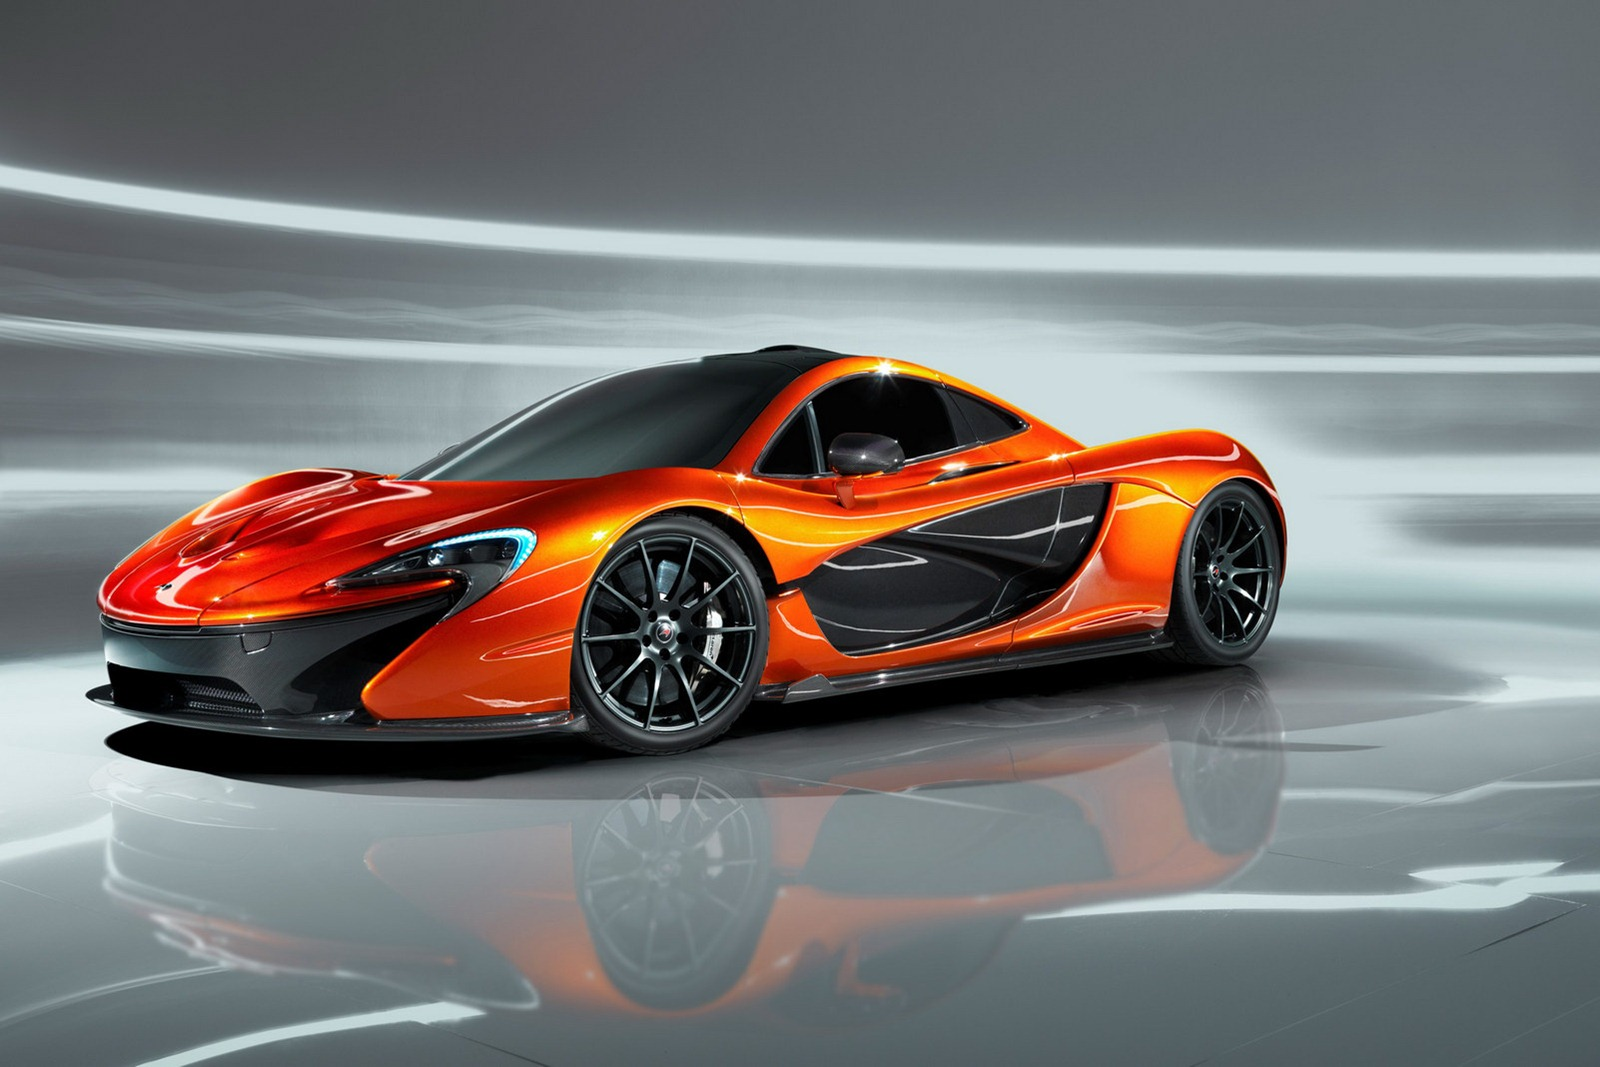 http://carrolodex.files.wordpress.com/2012/10/mclaren-p1-concept-car_front34.jpg